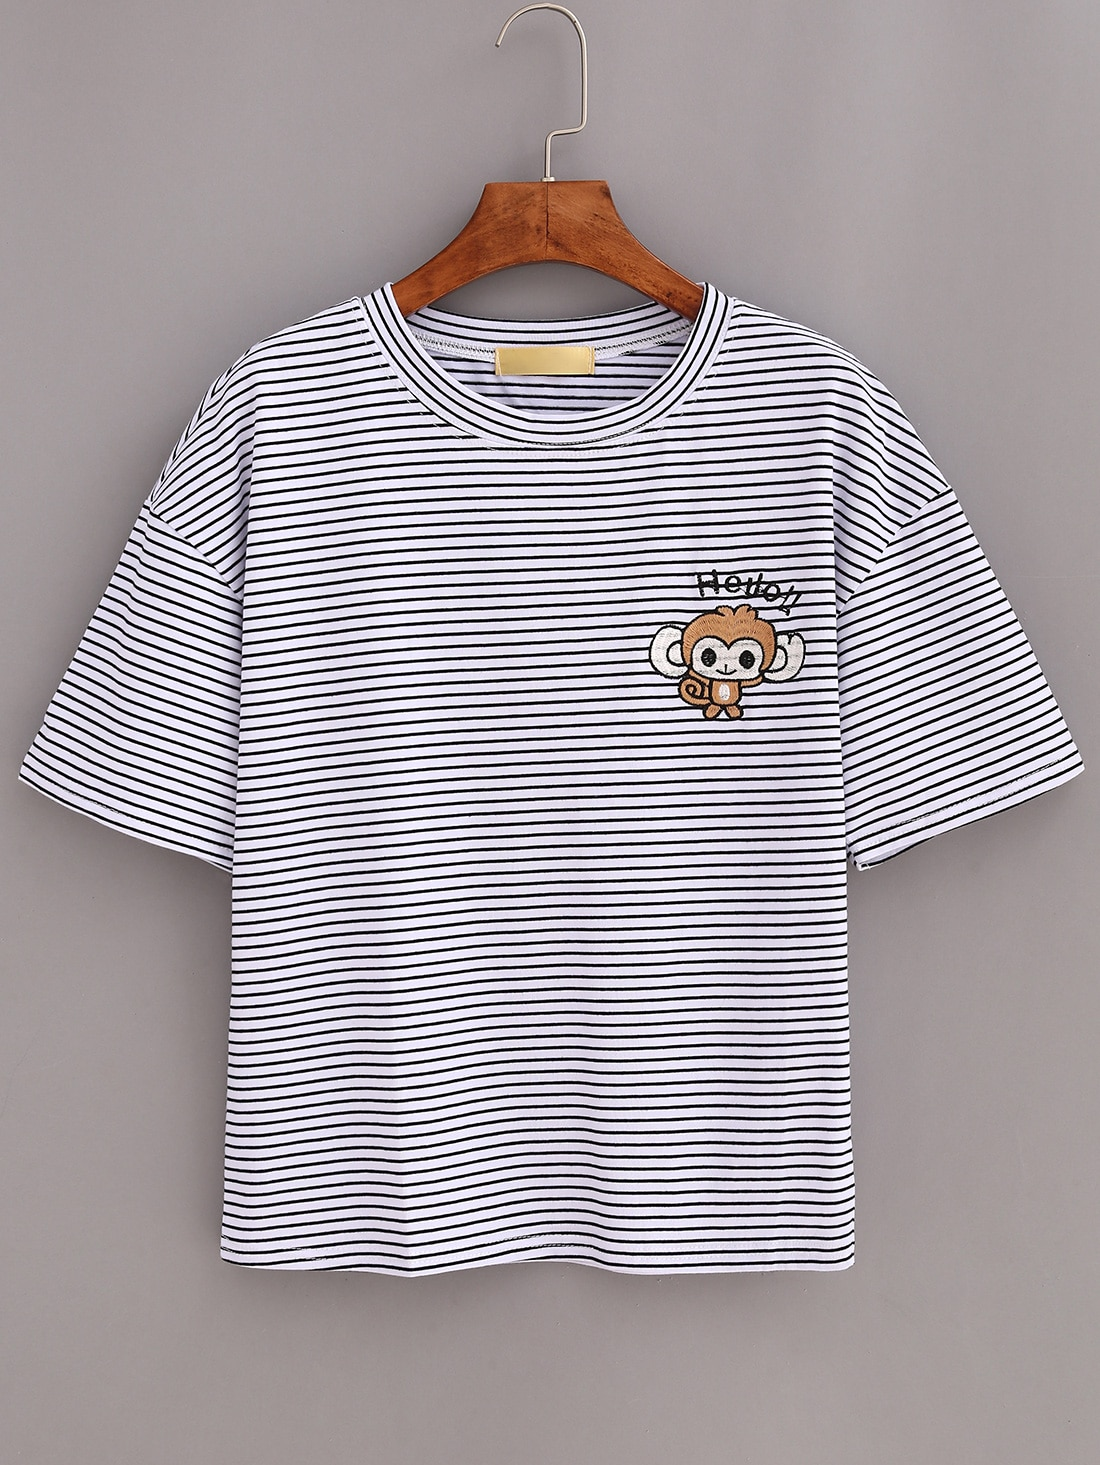 Monkey Embroidered Drop Shoulder Striped T-shirt - WhiteMonkey Embroidered Drop Shoulder Striped T-shirt - White<br><br>color: Black and White<br>size: one-size